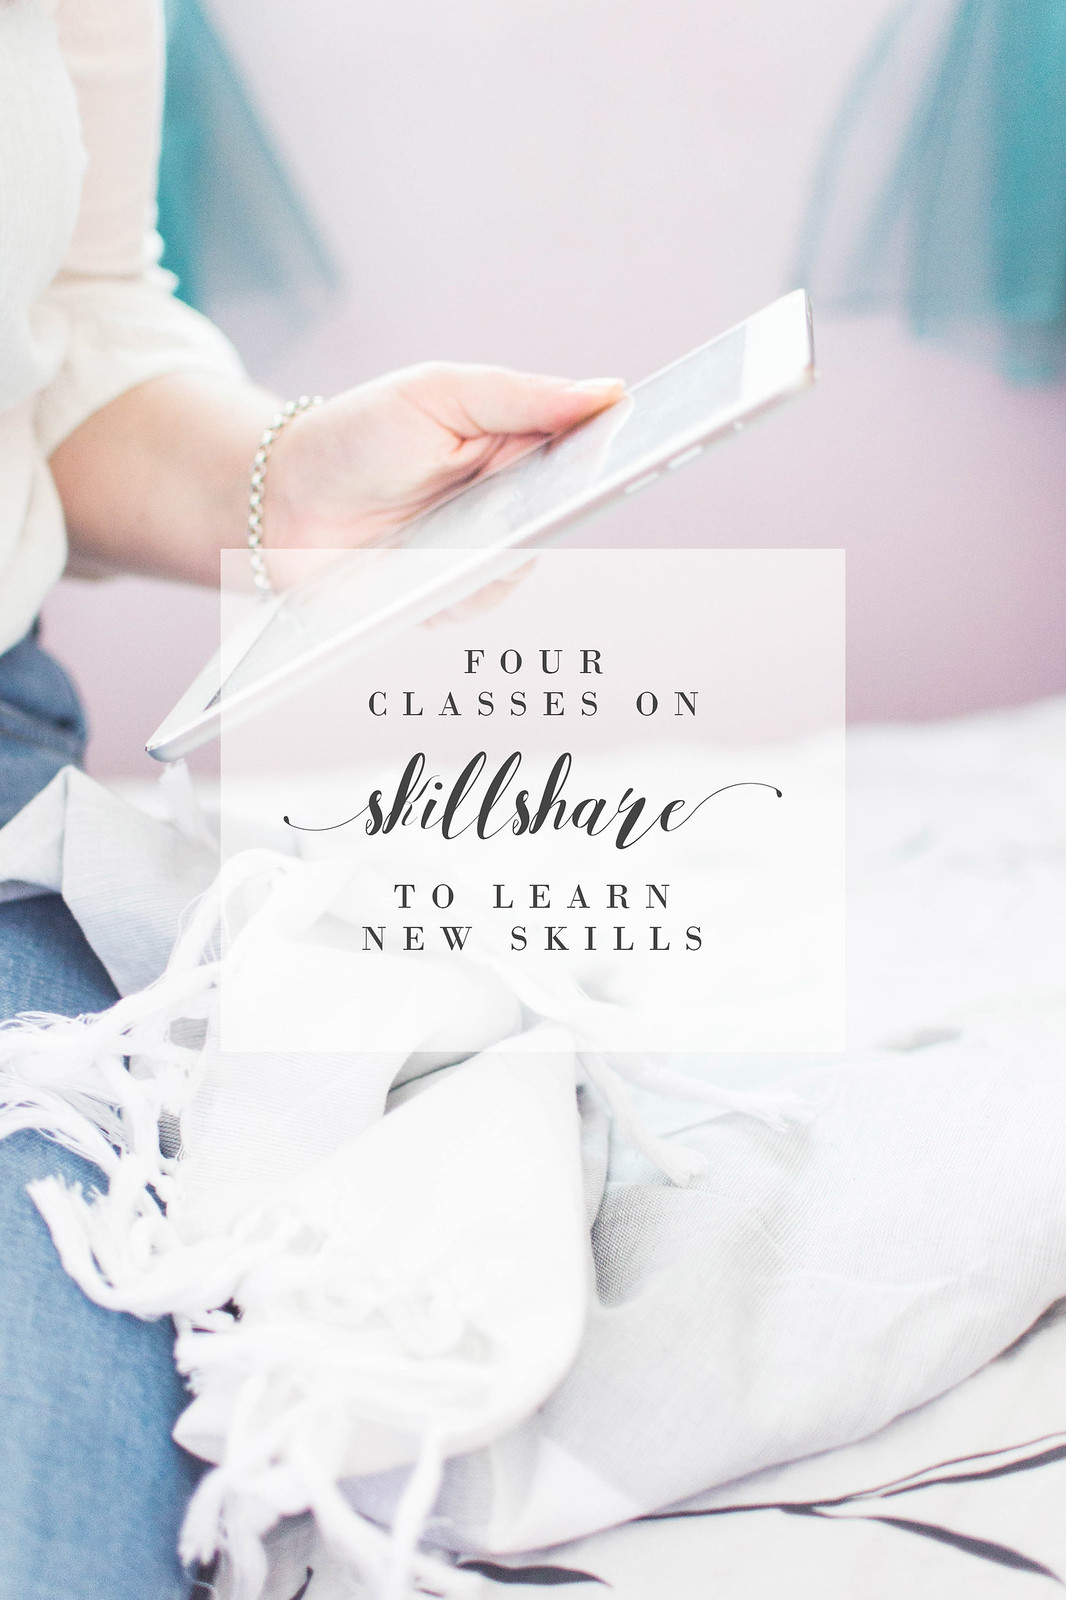 4 Skillshare Classes To Learn New Skills